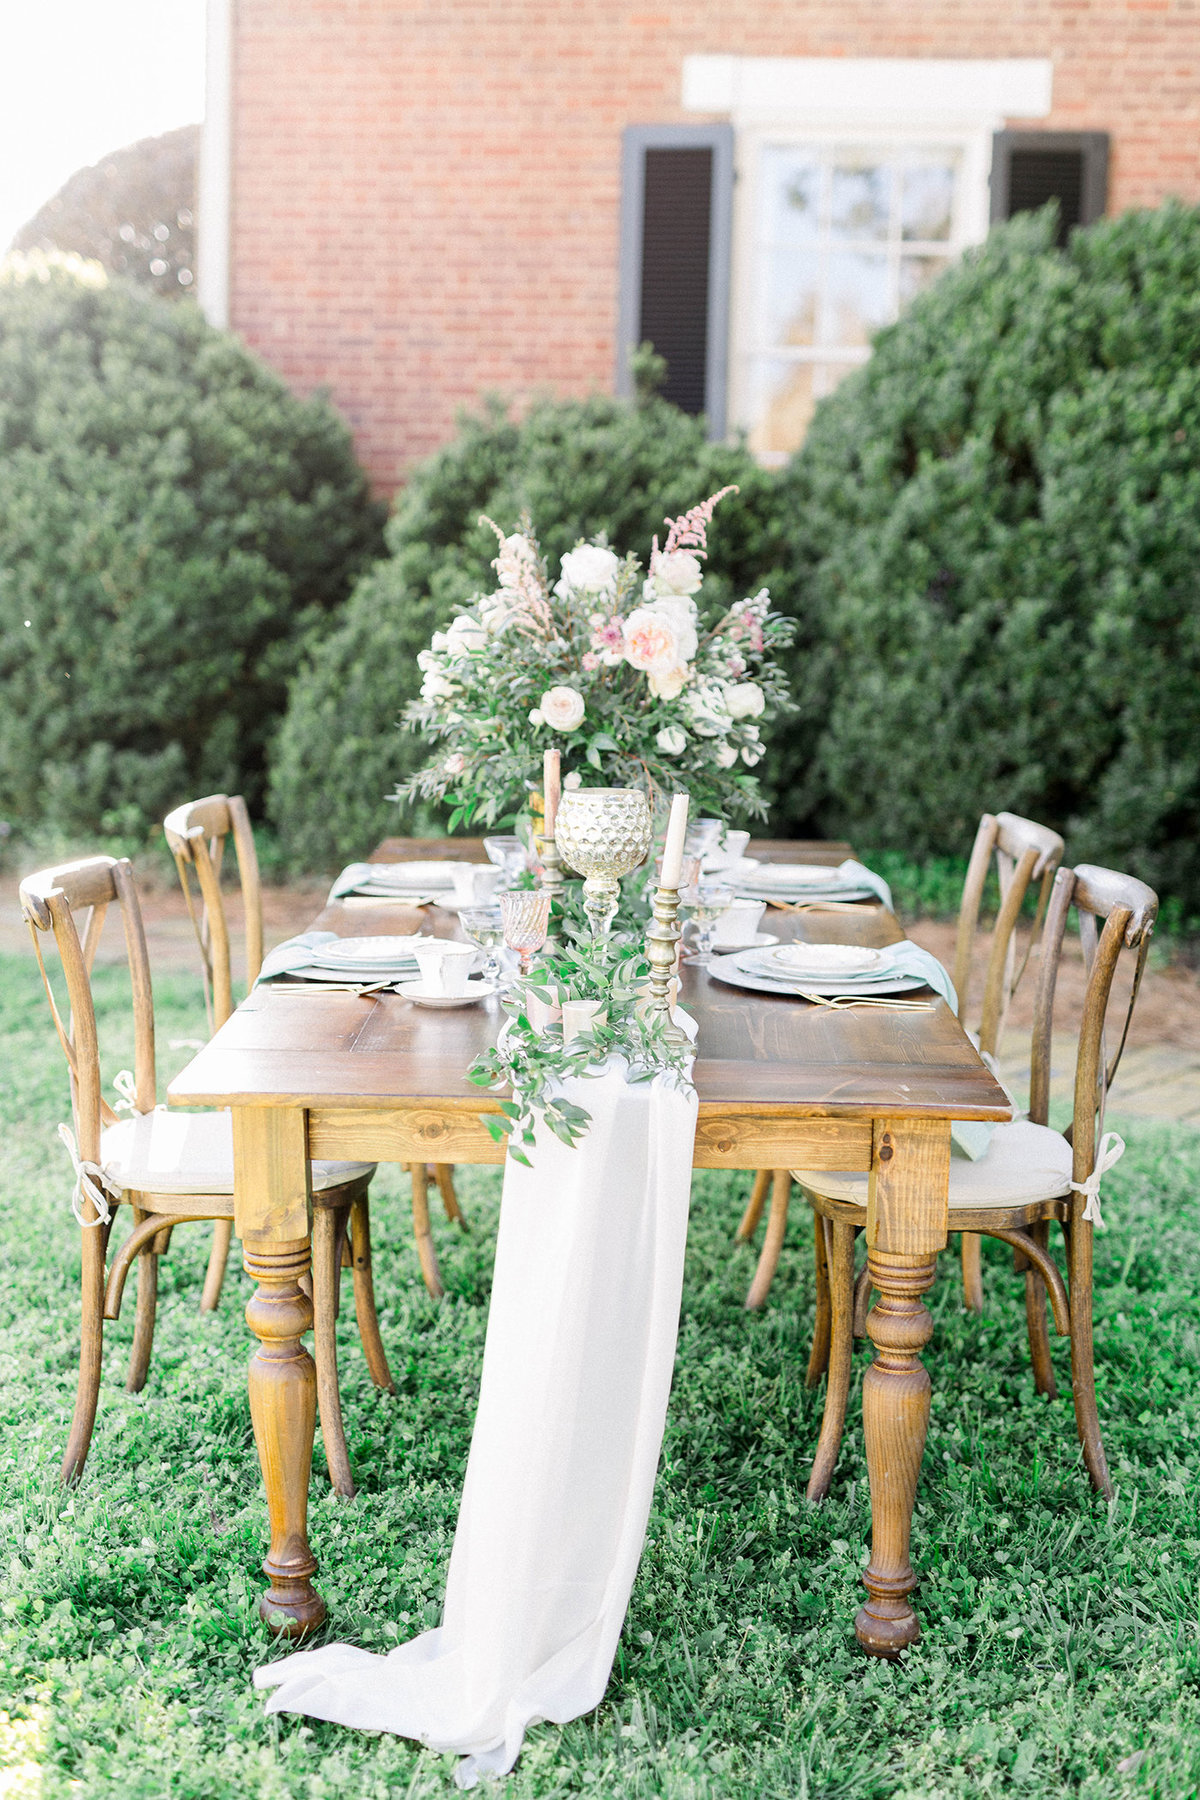 Cedarmont Nashville Editorial - Sarah Sunstrom Photography - Fine Art Wedding Photographer - 25